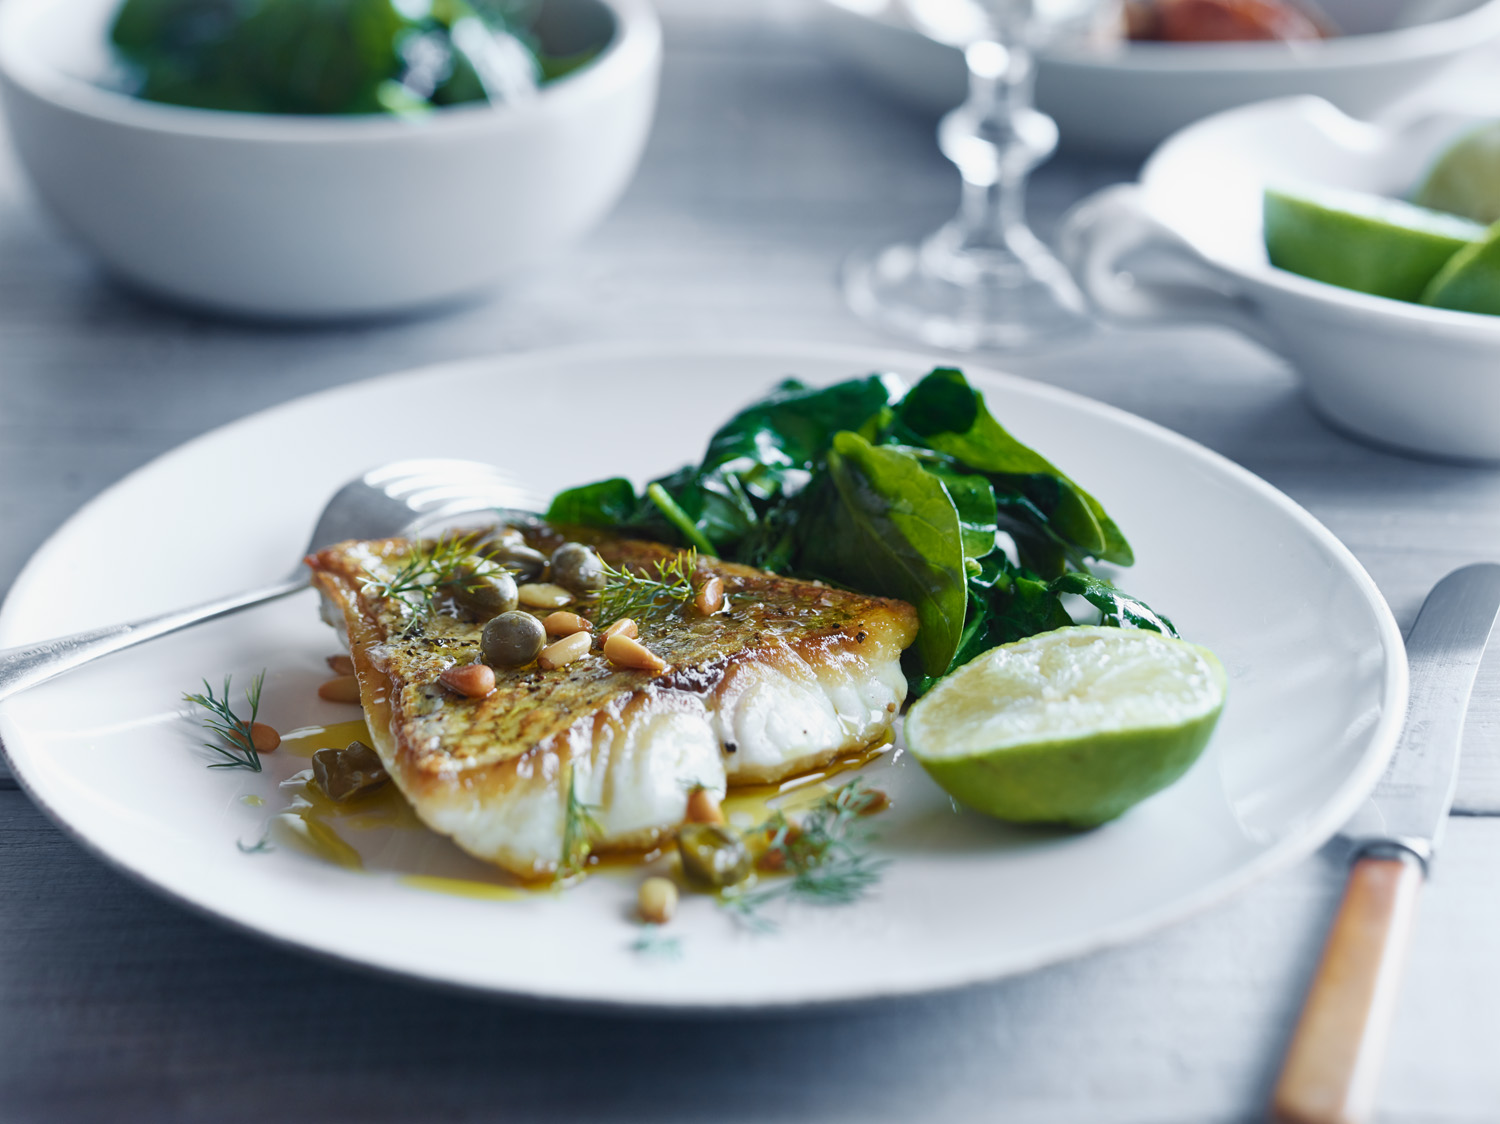 Crisp Skin Fish with Capers, Pine Nuts and Garlic Spinach